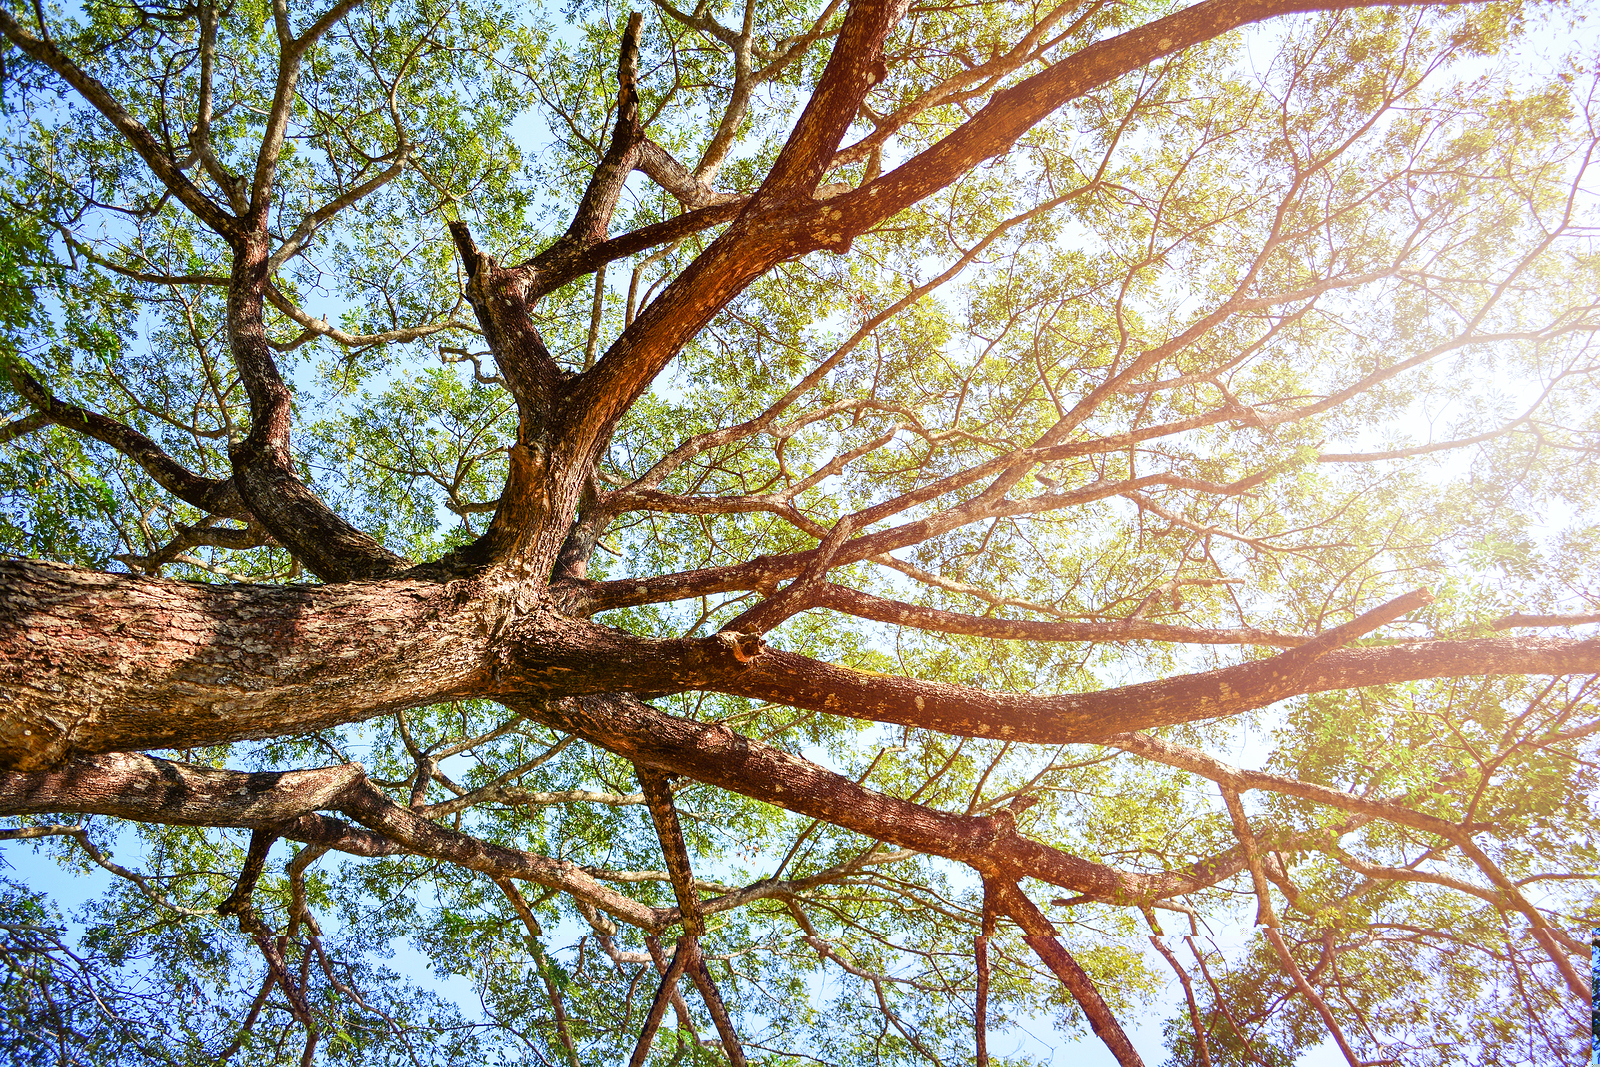 bigstock-Looking-Up-On-Tree--View-Unde-286986835.jpg